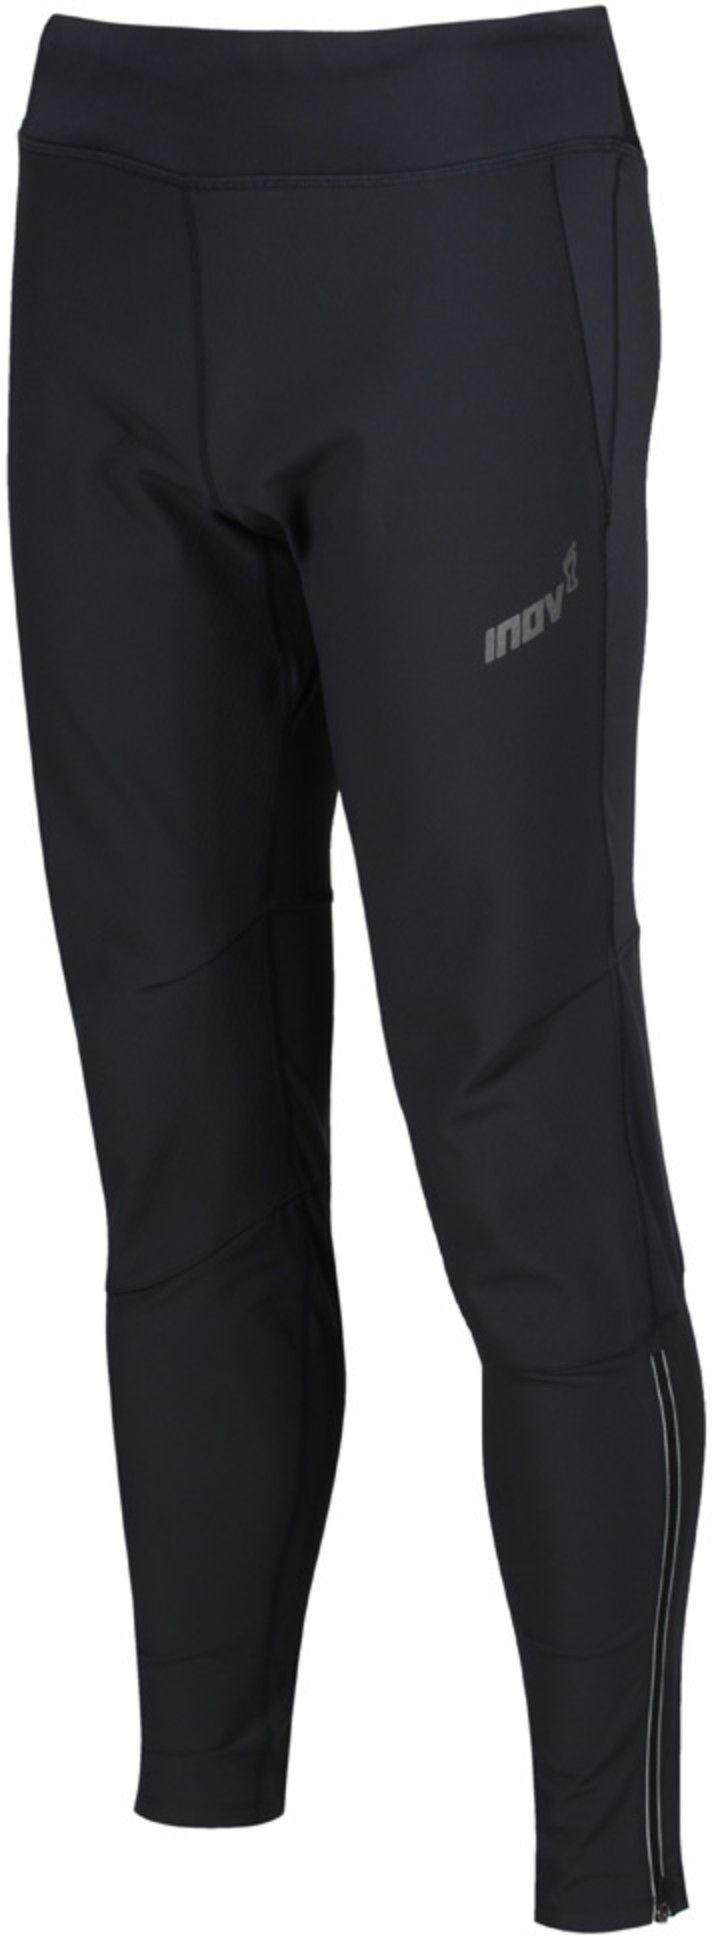 Pantaloni INOV-8 INOV-8 WINTER TIGHT M